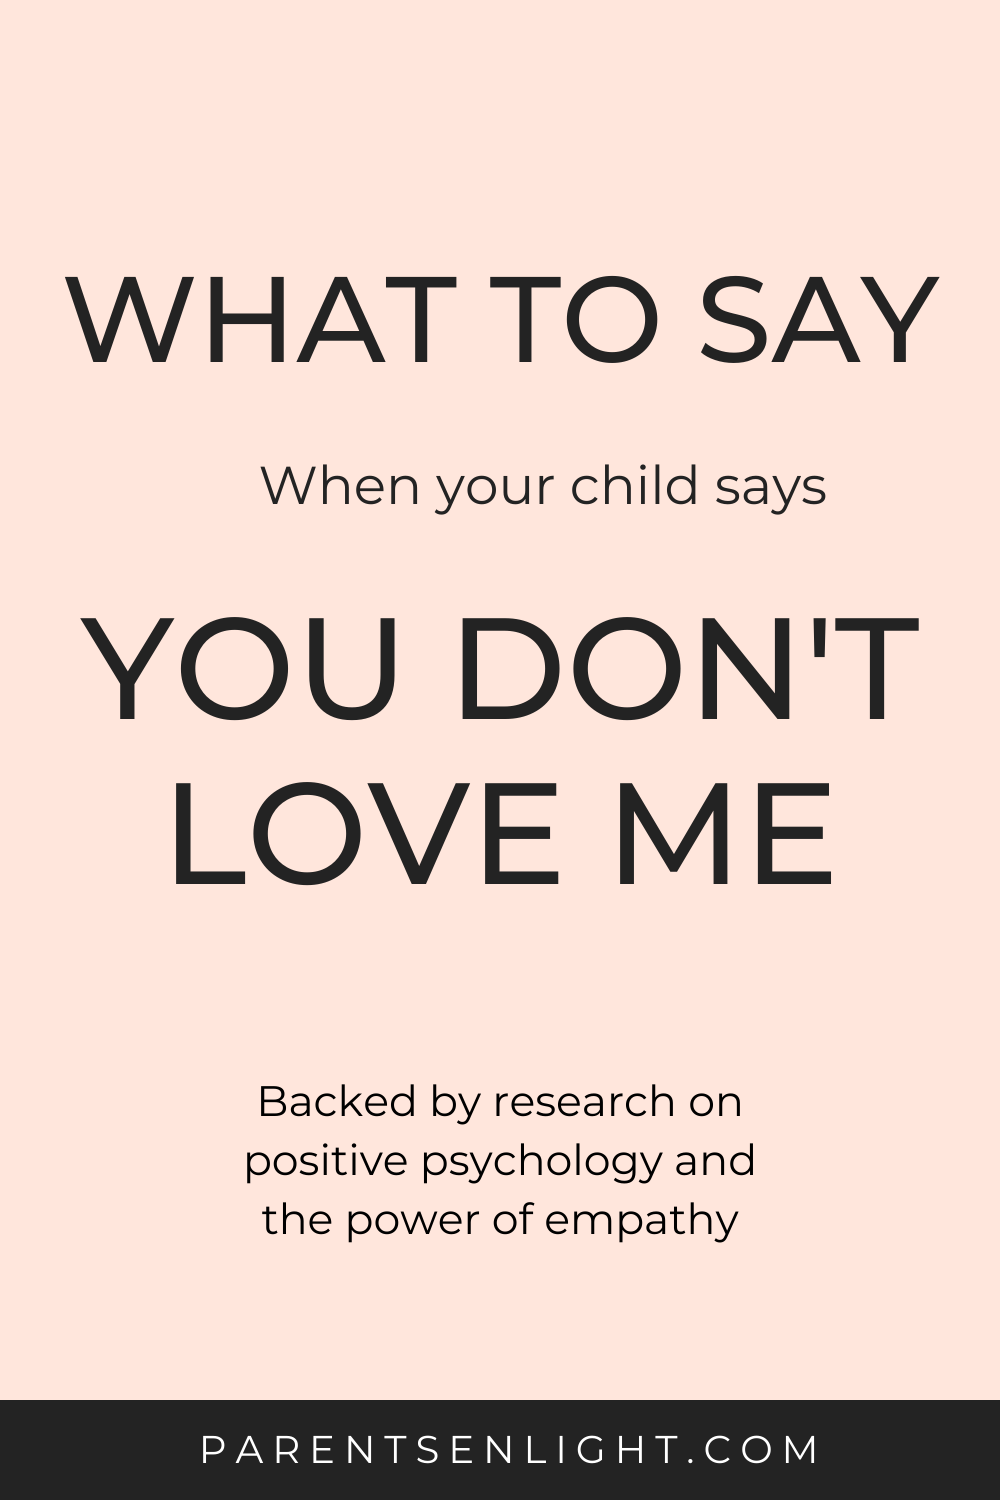 Empathizing with sayings that cause us pain is one of the hardest things to do, and yet it is the only beneficial practice when it comes to children's big feelings. Most parents don't know what to say when their children tell them they are not feeling loved. Want to learn what to say? Click to read. #empathy #positivepsychology #positivecommunication #unconditionalparenting #whattosaywhenyourchildsaysyoudontlovehim #bigfeelings #parentingtips #attachmentparenting #nvc #parentingfromtheheart #smartparenting #parentinghelp